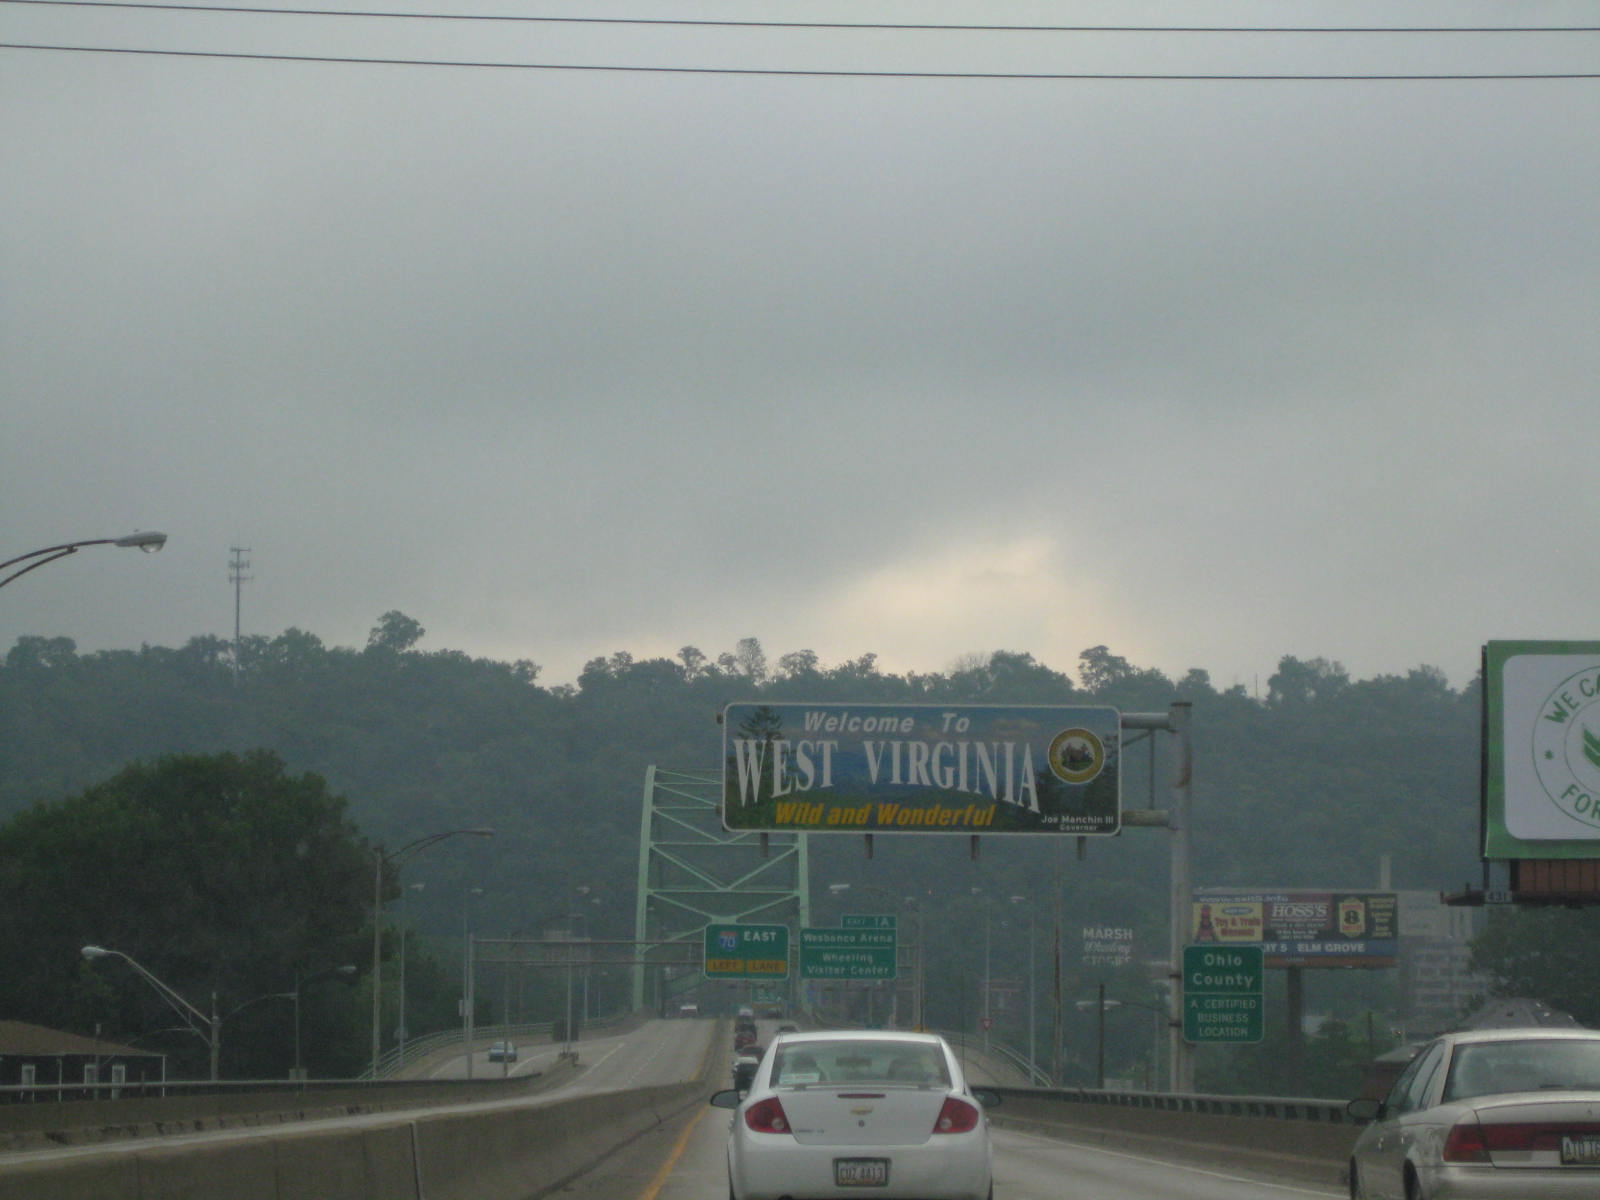 Crossing into West Virginia for a bit.